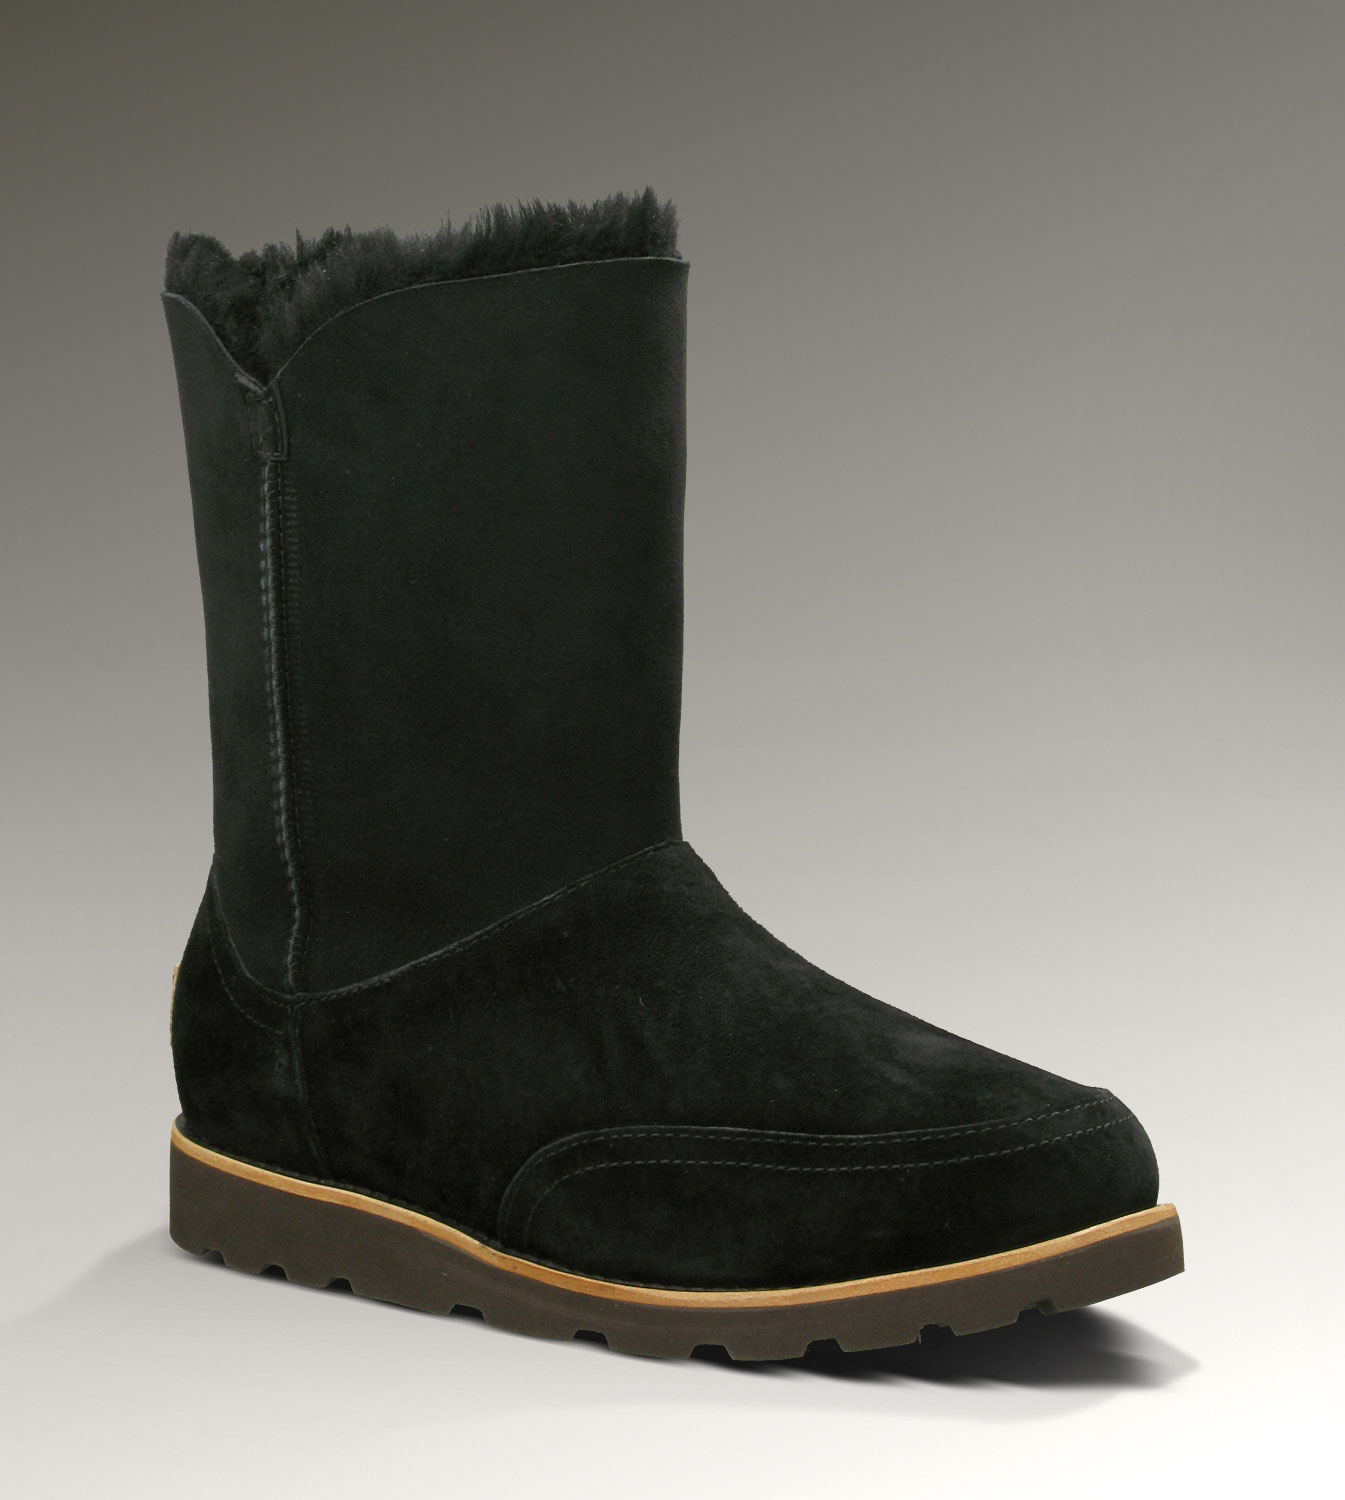 UGG Shanleigh 3216 Black Boots